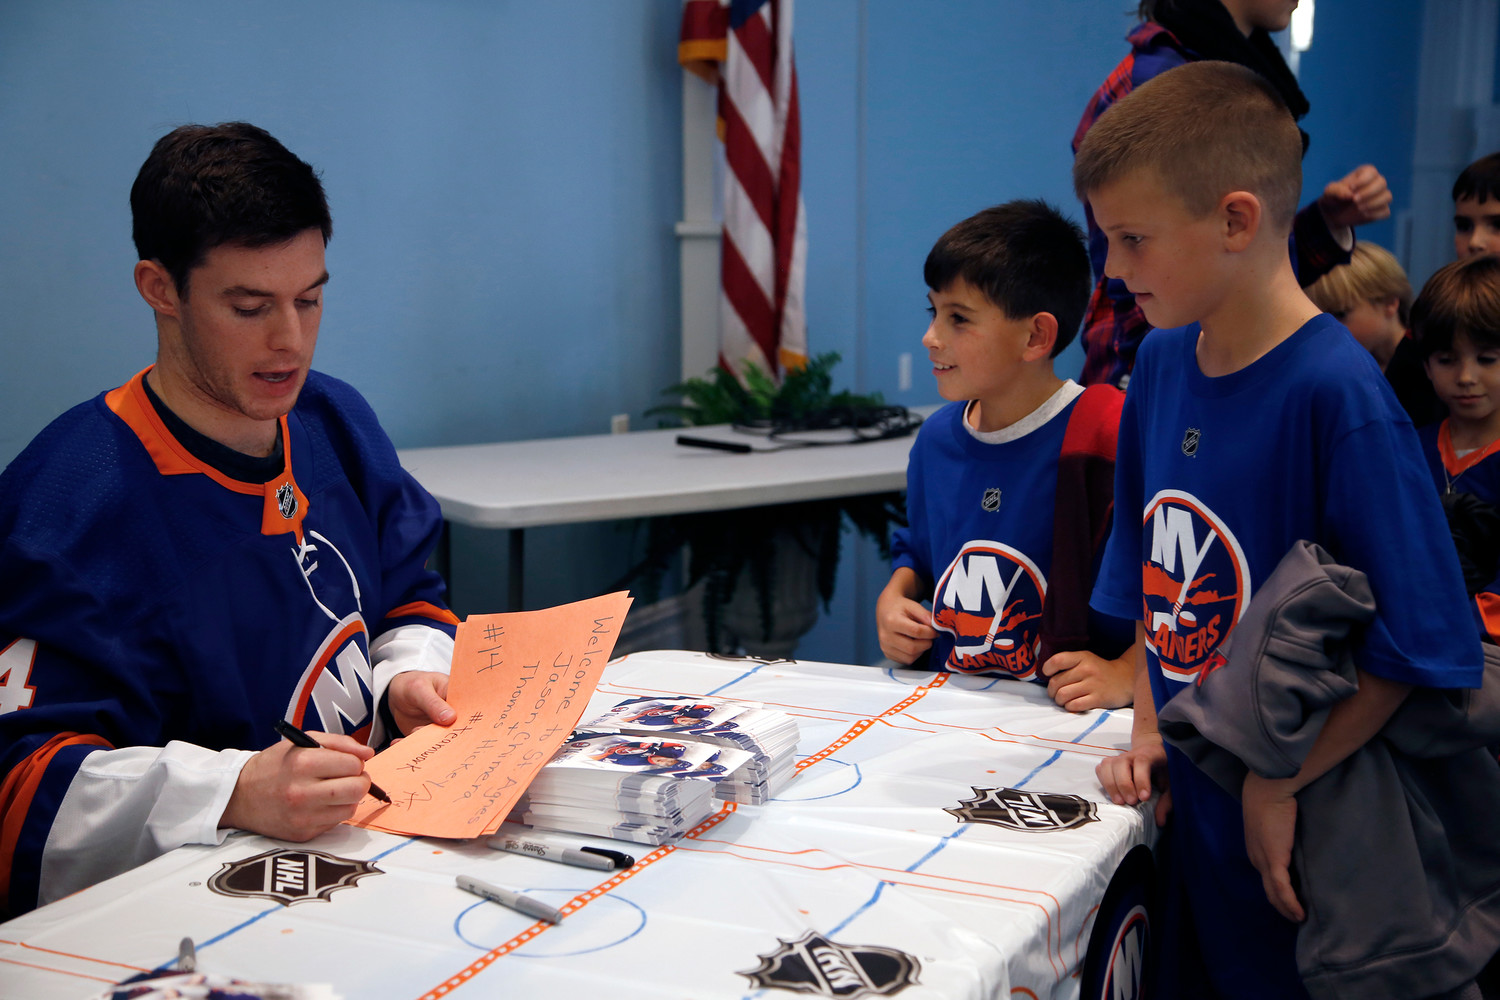 Thomas Hickey signed fourth-grader Owen Murray's poster, as his classmate Aidan Cormican looked on.